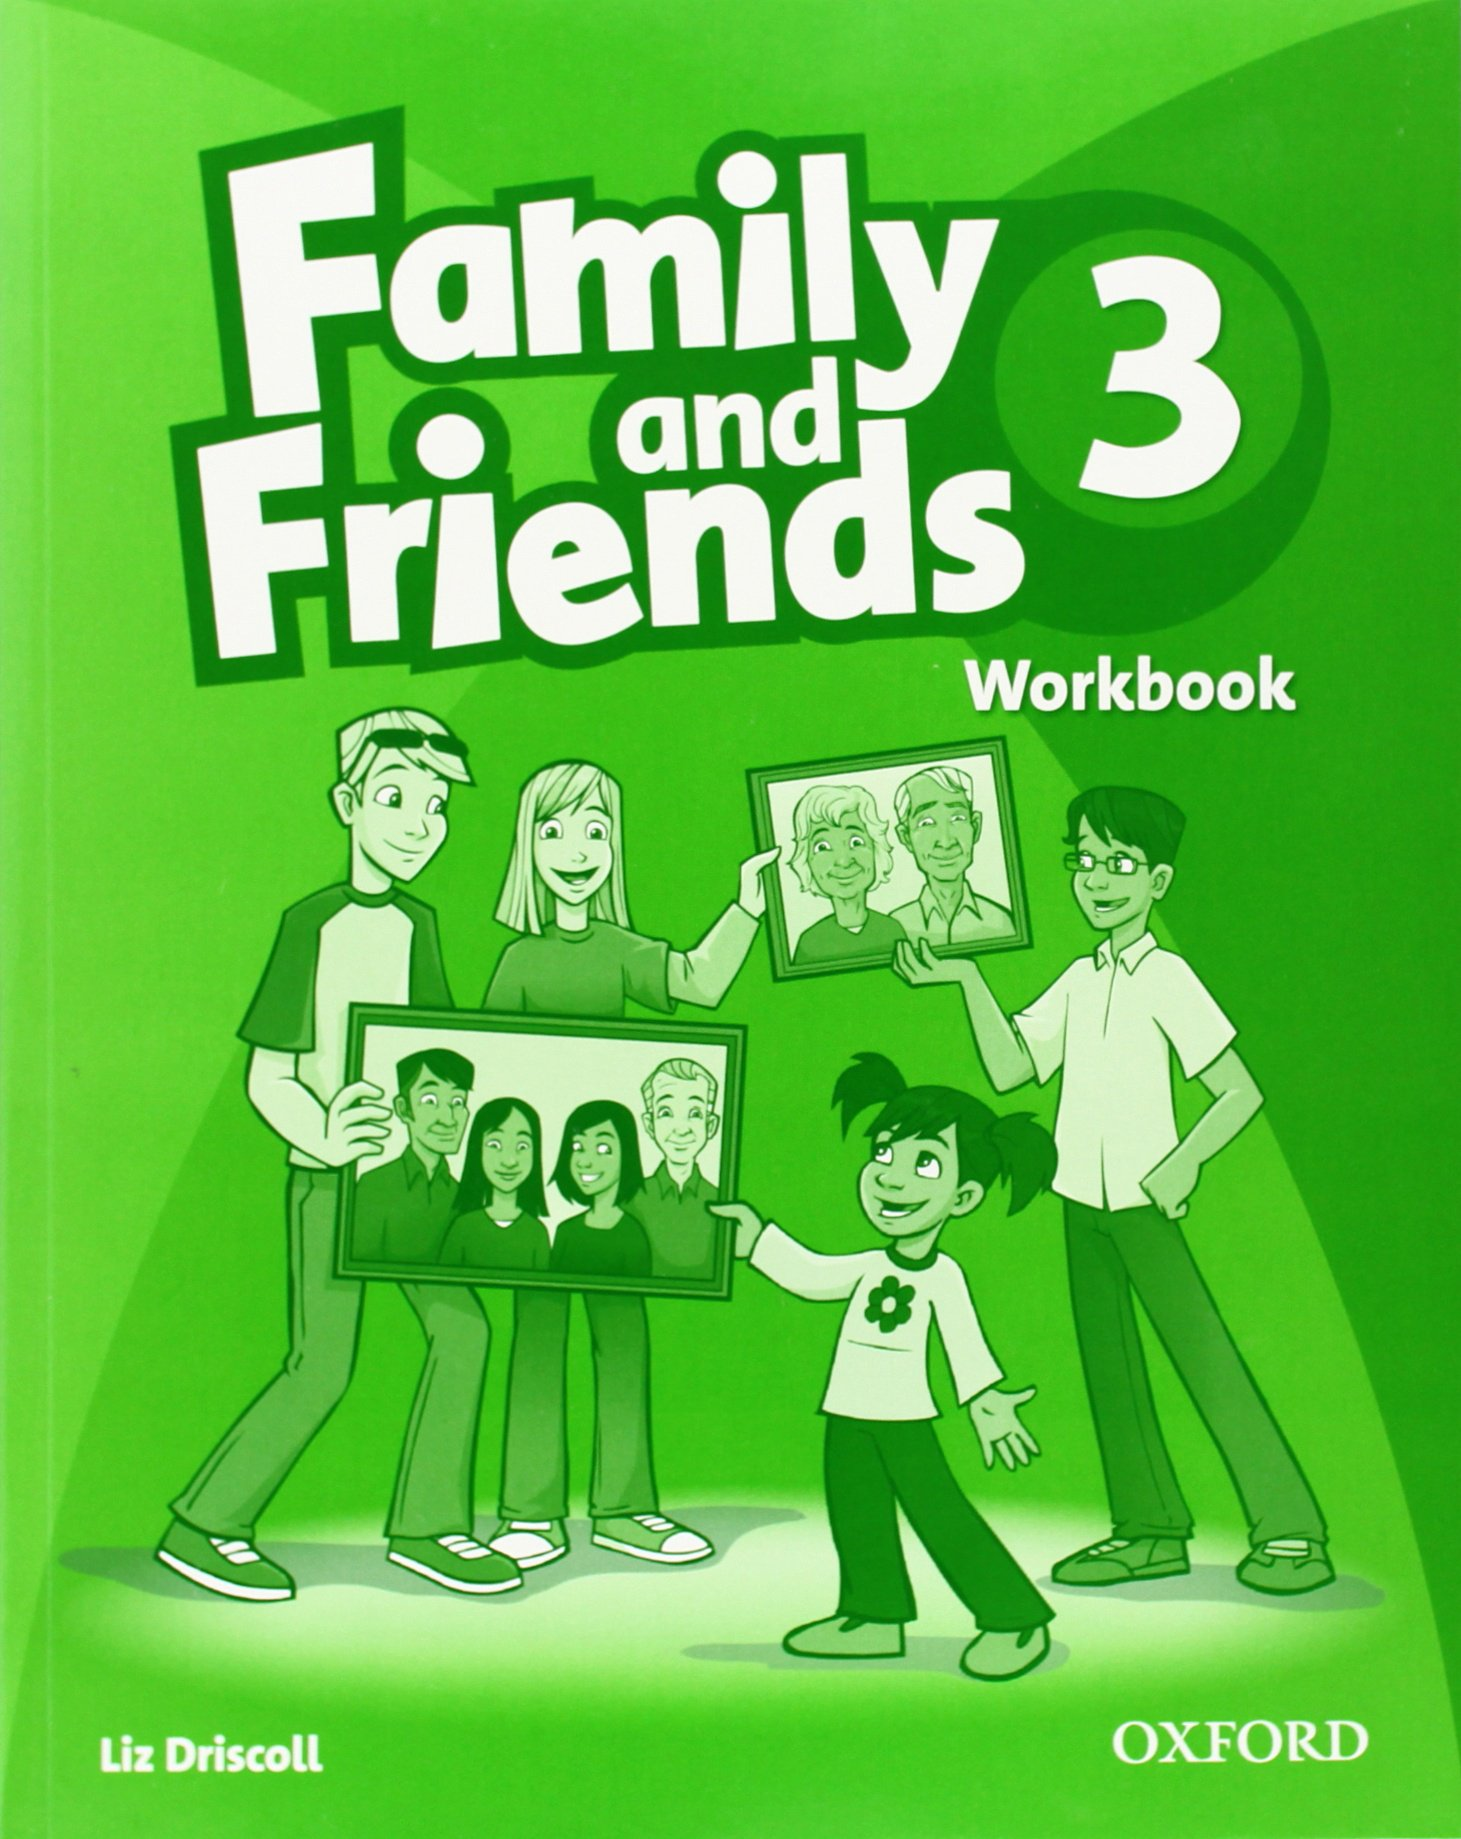 FAMILY & FRIENDS 3 Workbook